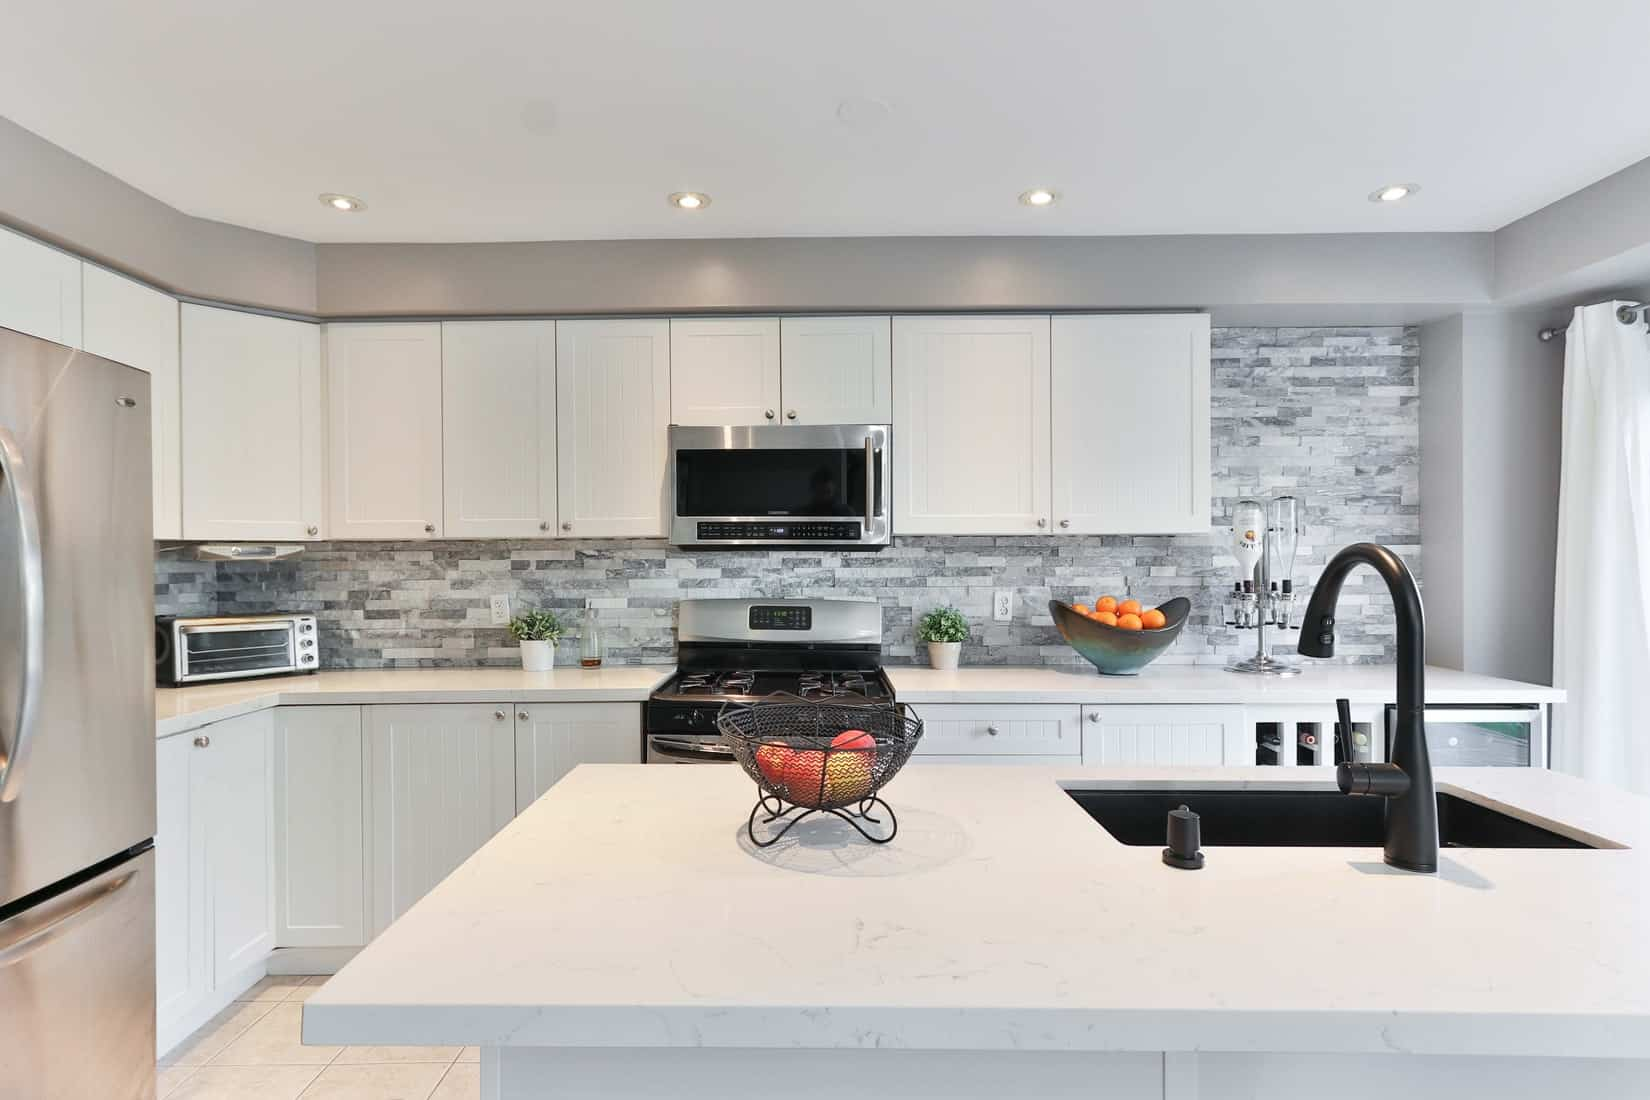 8 things you don't know about quartz counter tops 2